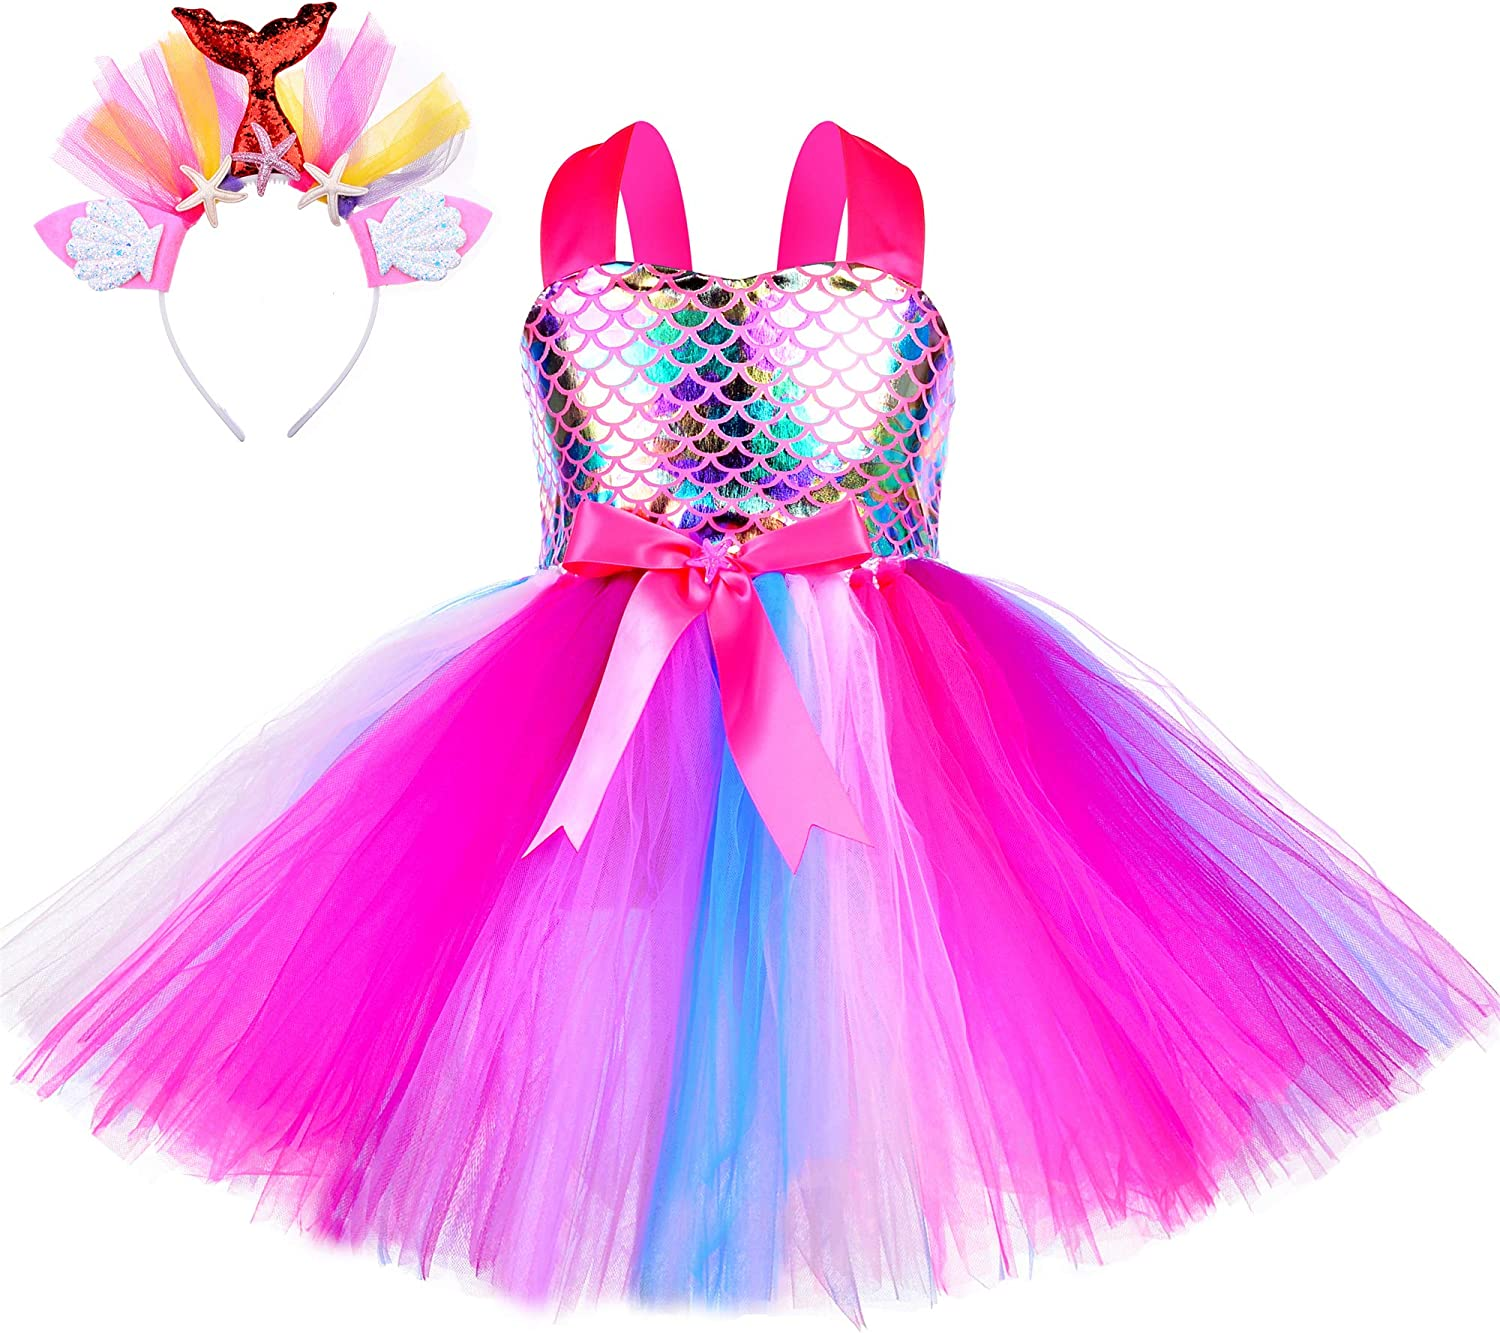 Amazon Com Little Mermaid Tutu Dress For Girls Halloween Birthday Party Princess Costume Outfit Tulle Kids Dresses Clothing